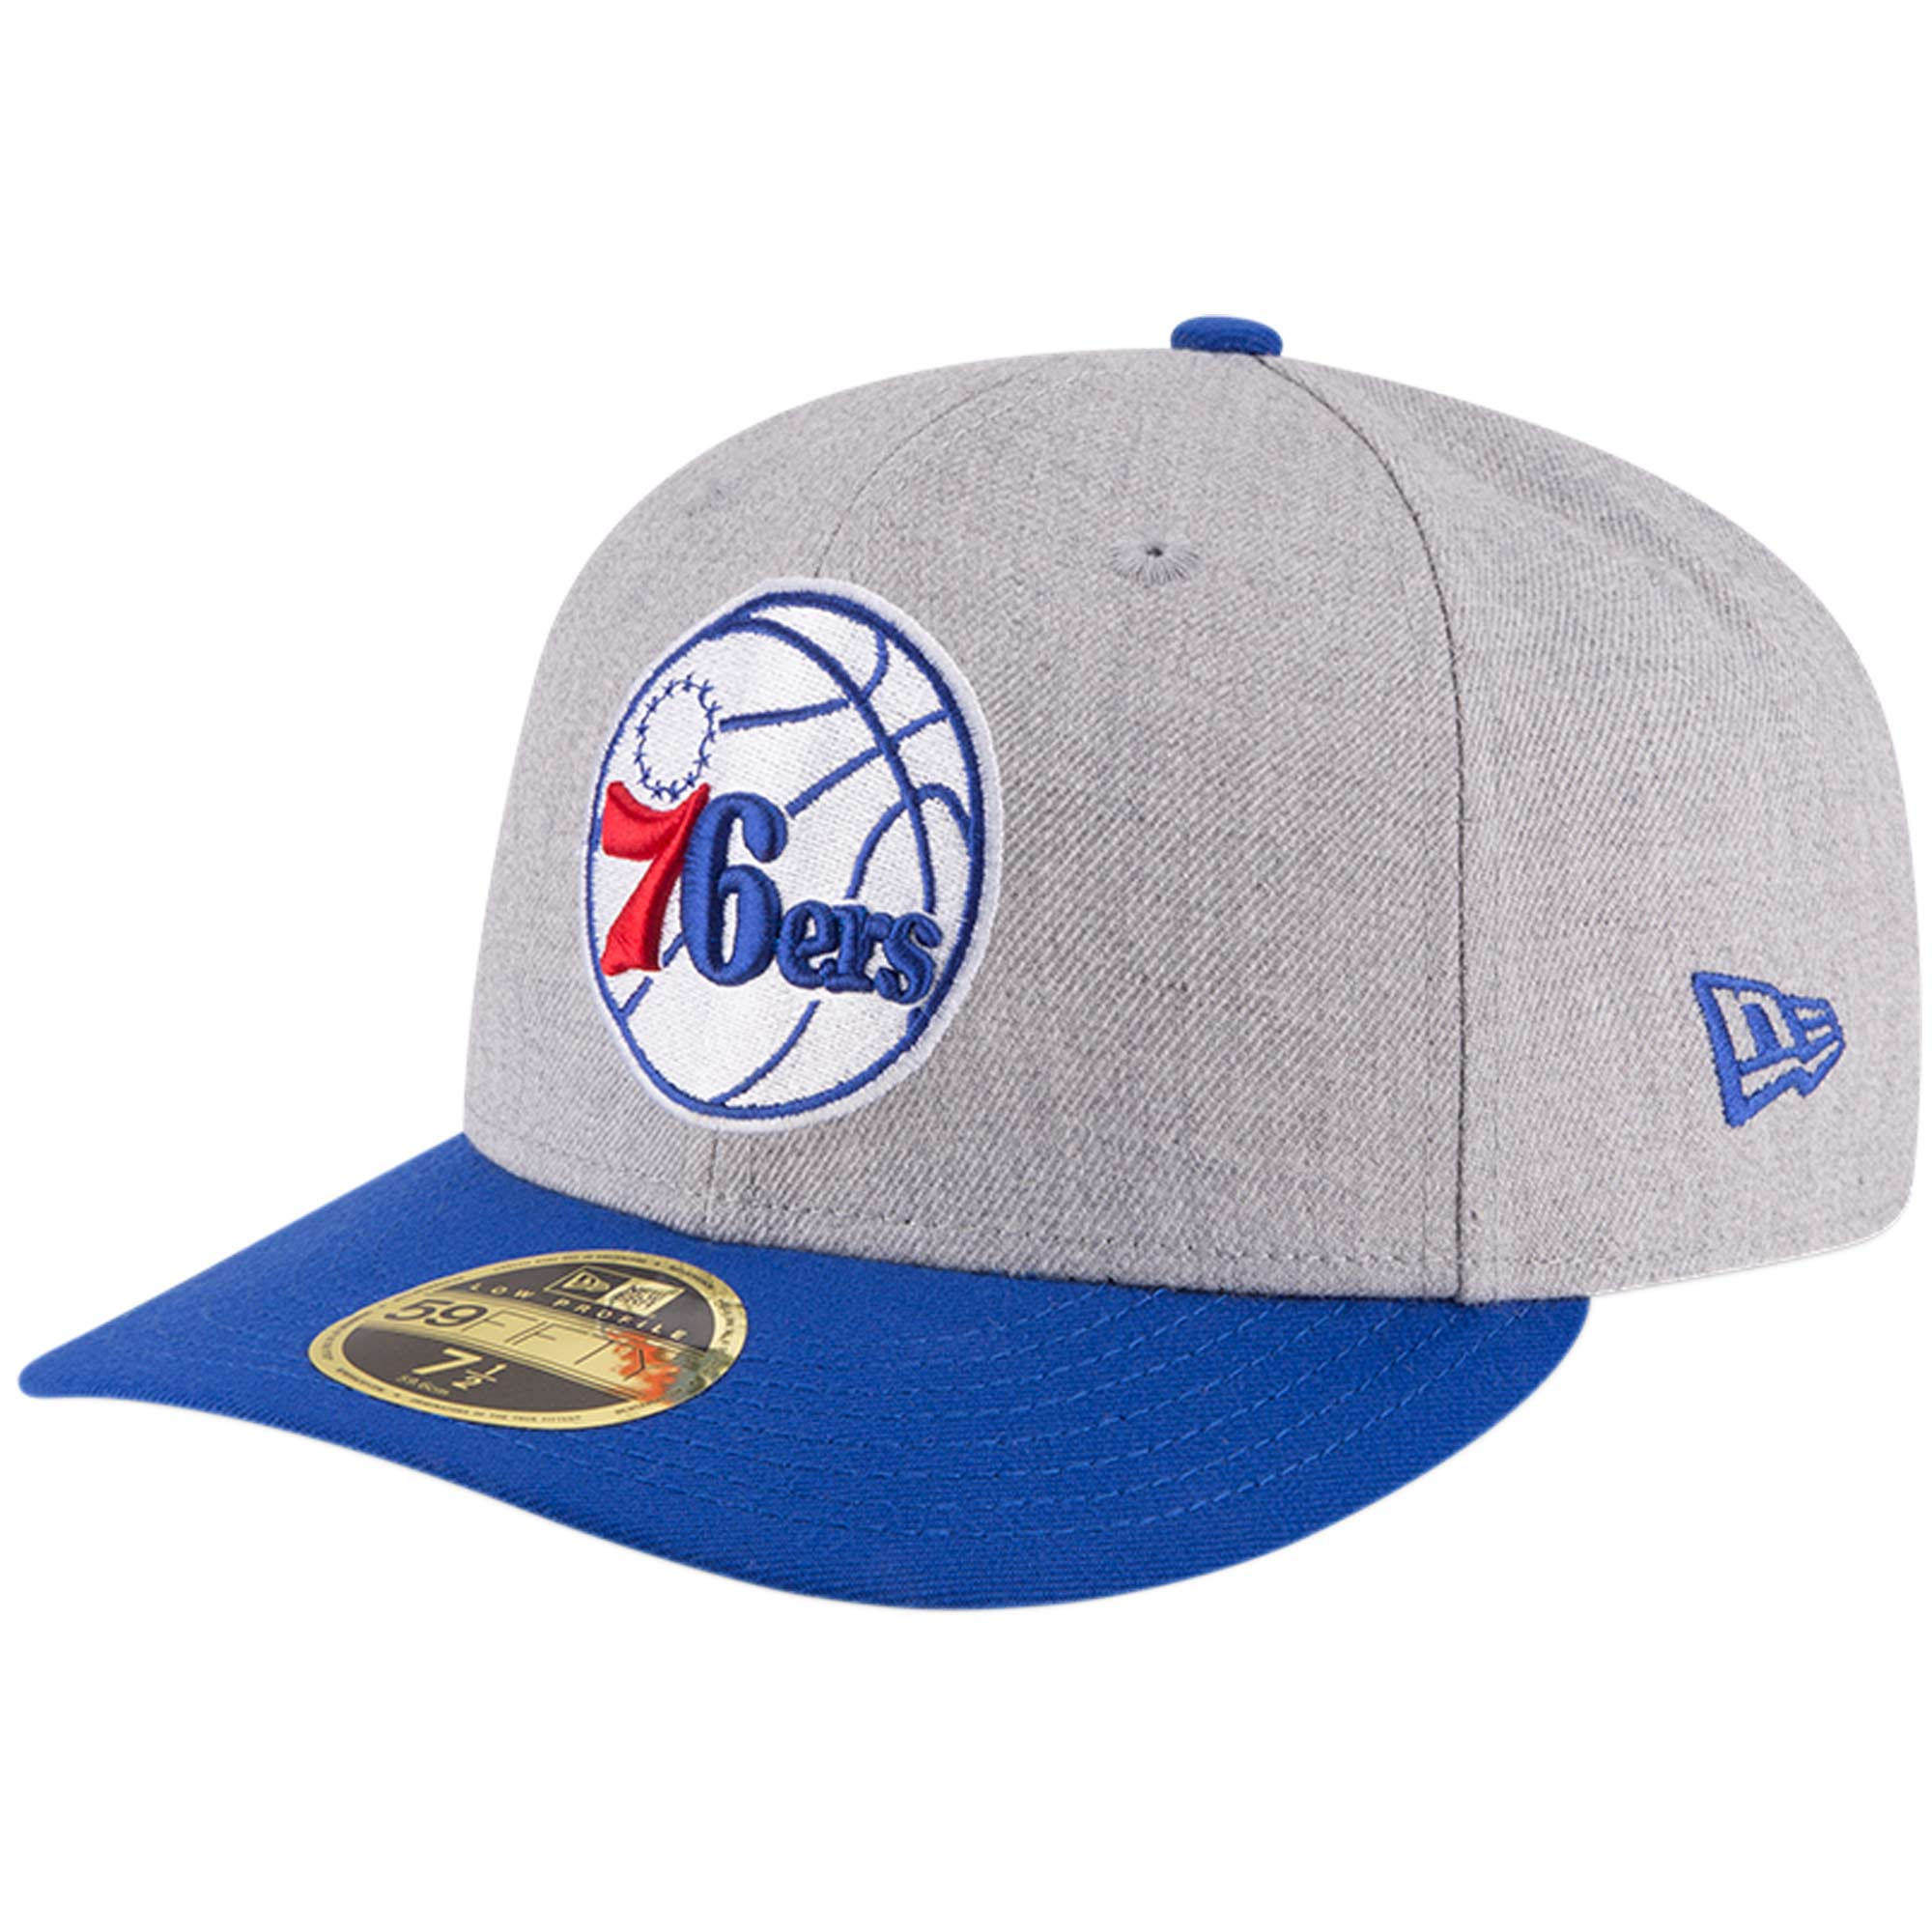 Philadelphia 76ers New Era Two-Tone Low Profile 59FIFTY Fitted Hat - Heathered Gray/Royal